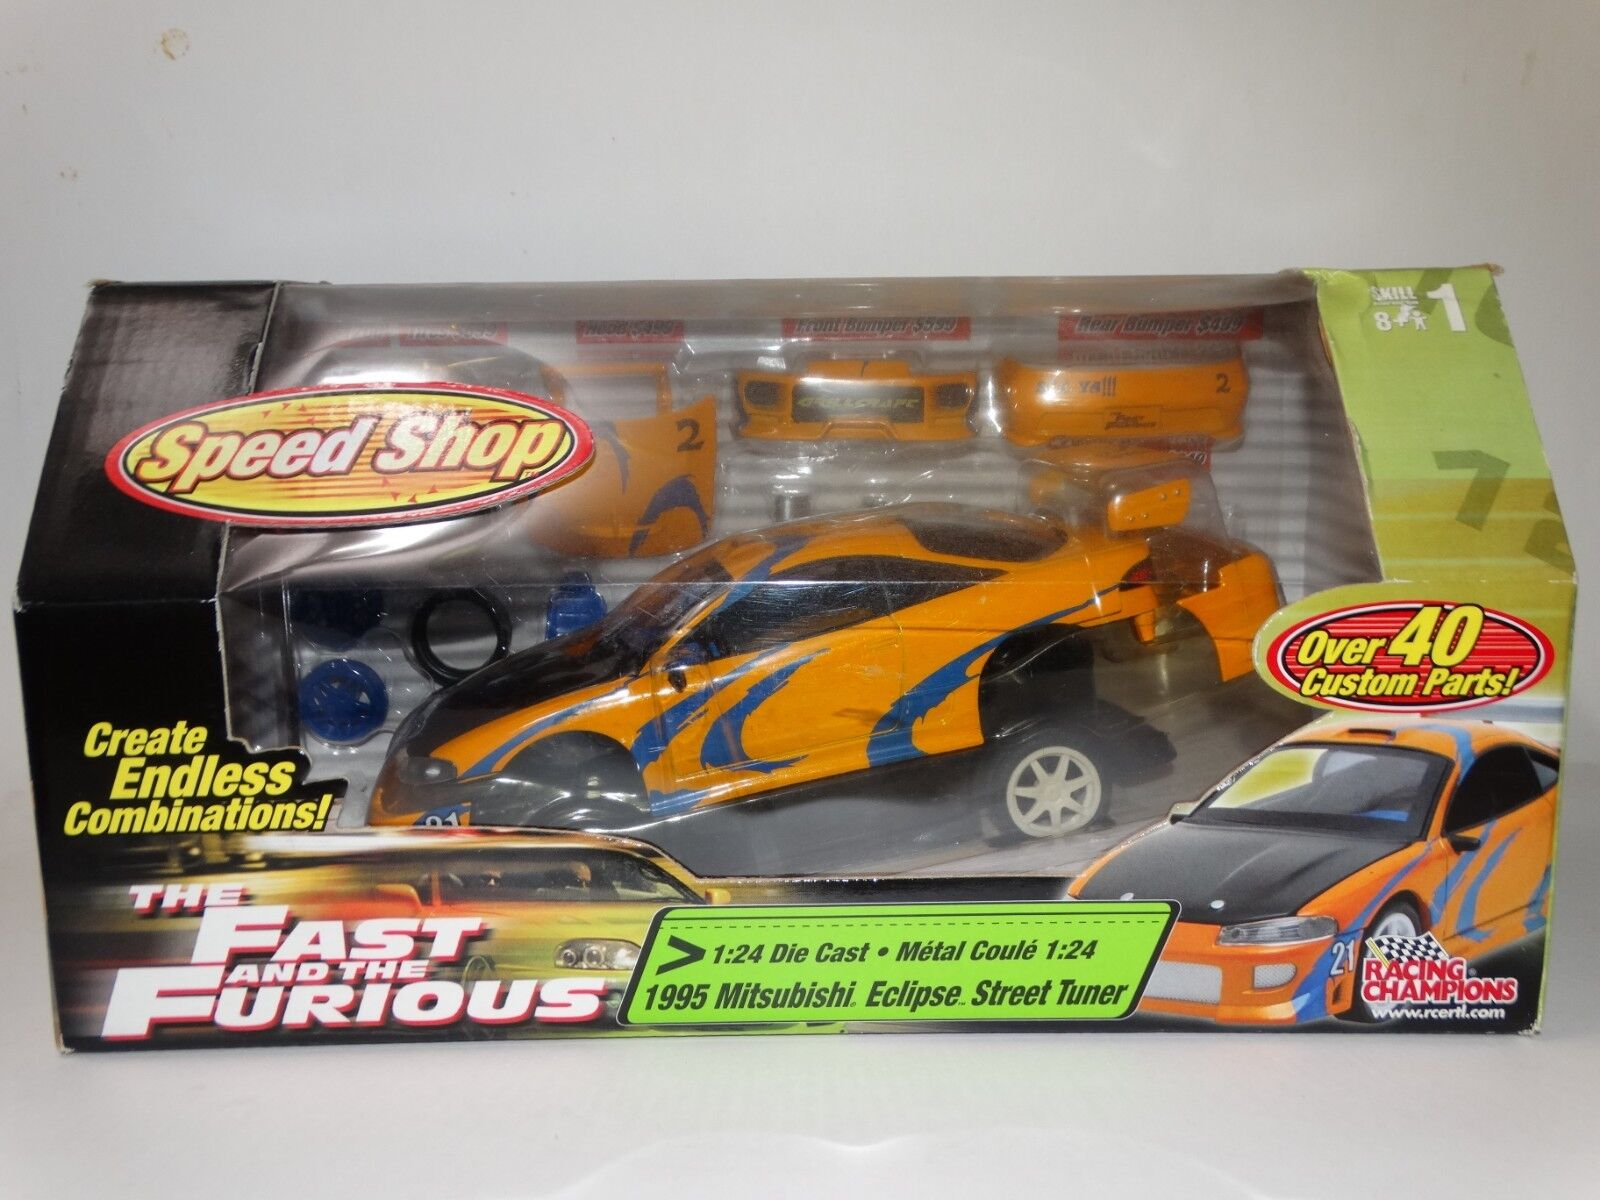 Ertl Fast And Furious 1995 Mitsubishi Eclipse Tuner 1 24 Diecast Model Car Kit